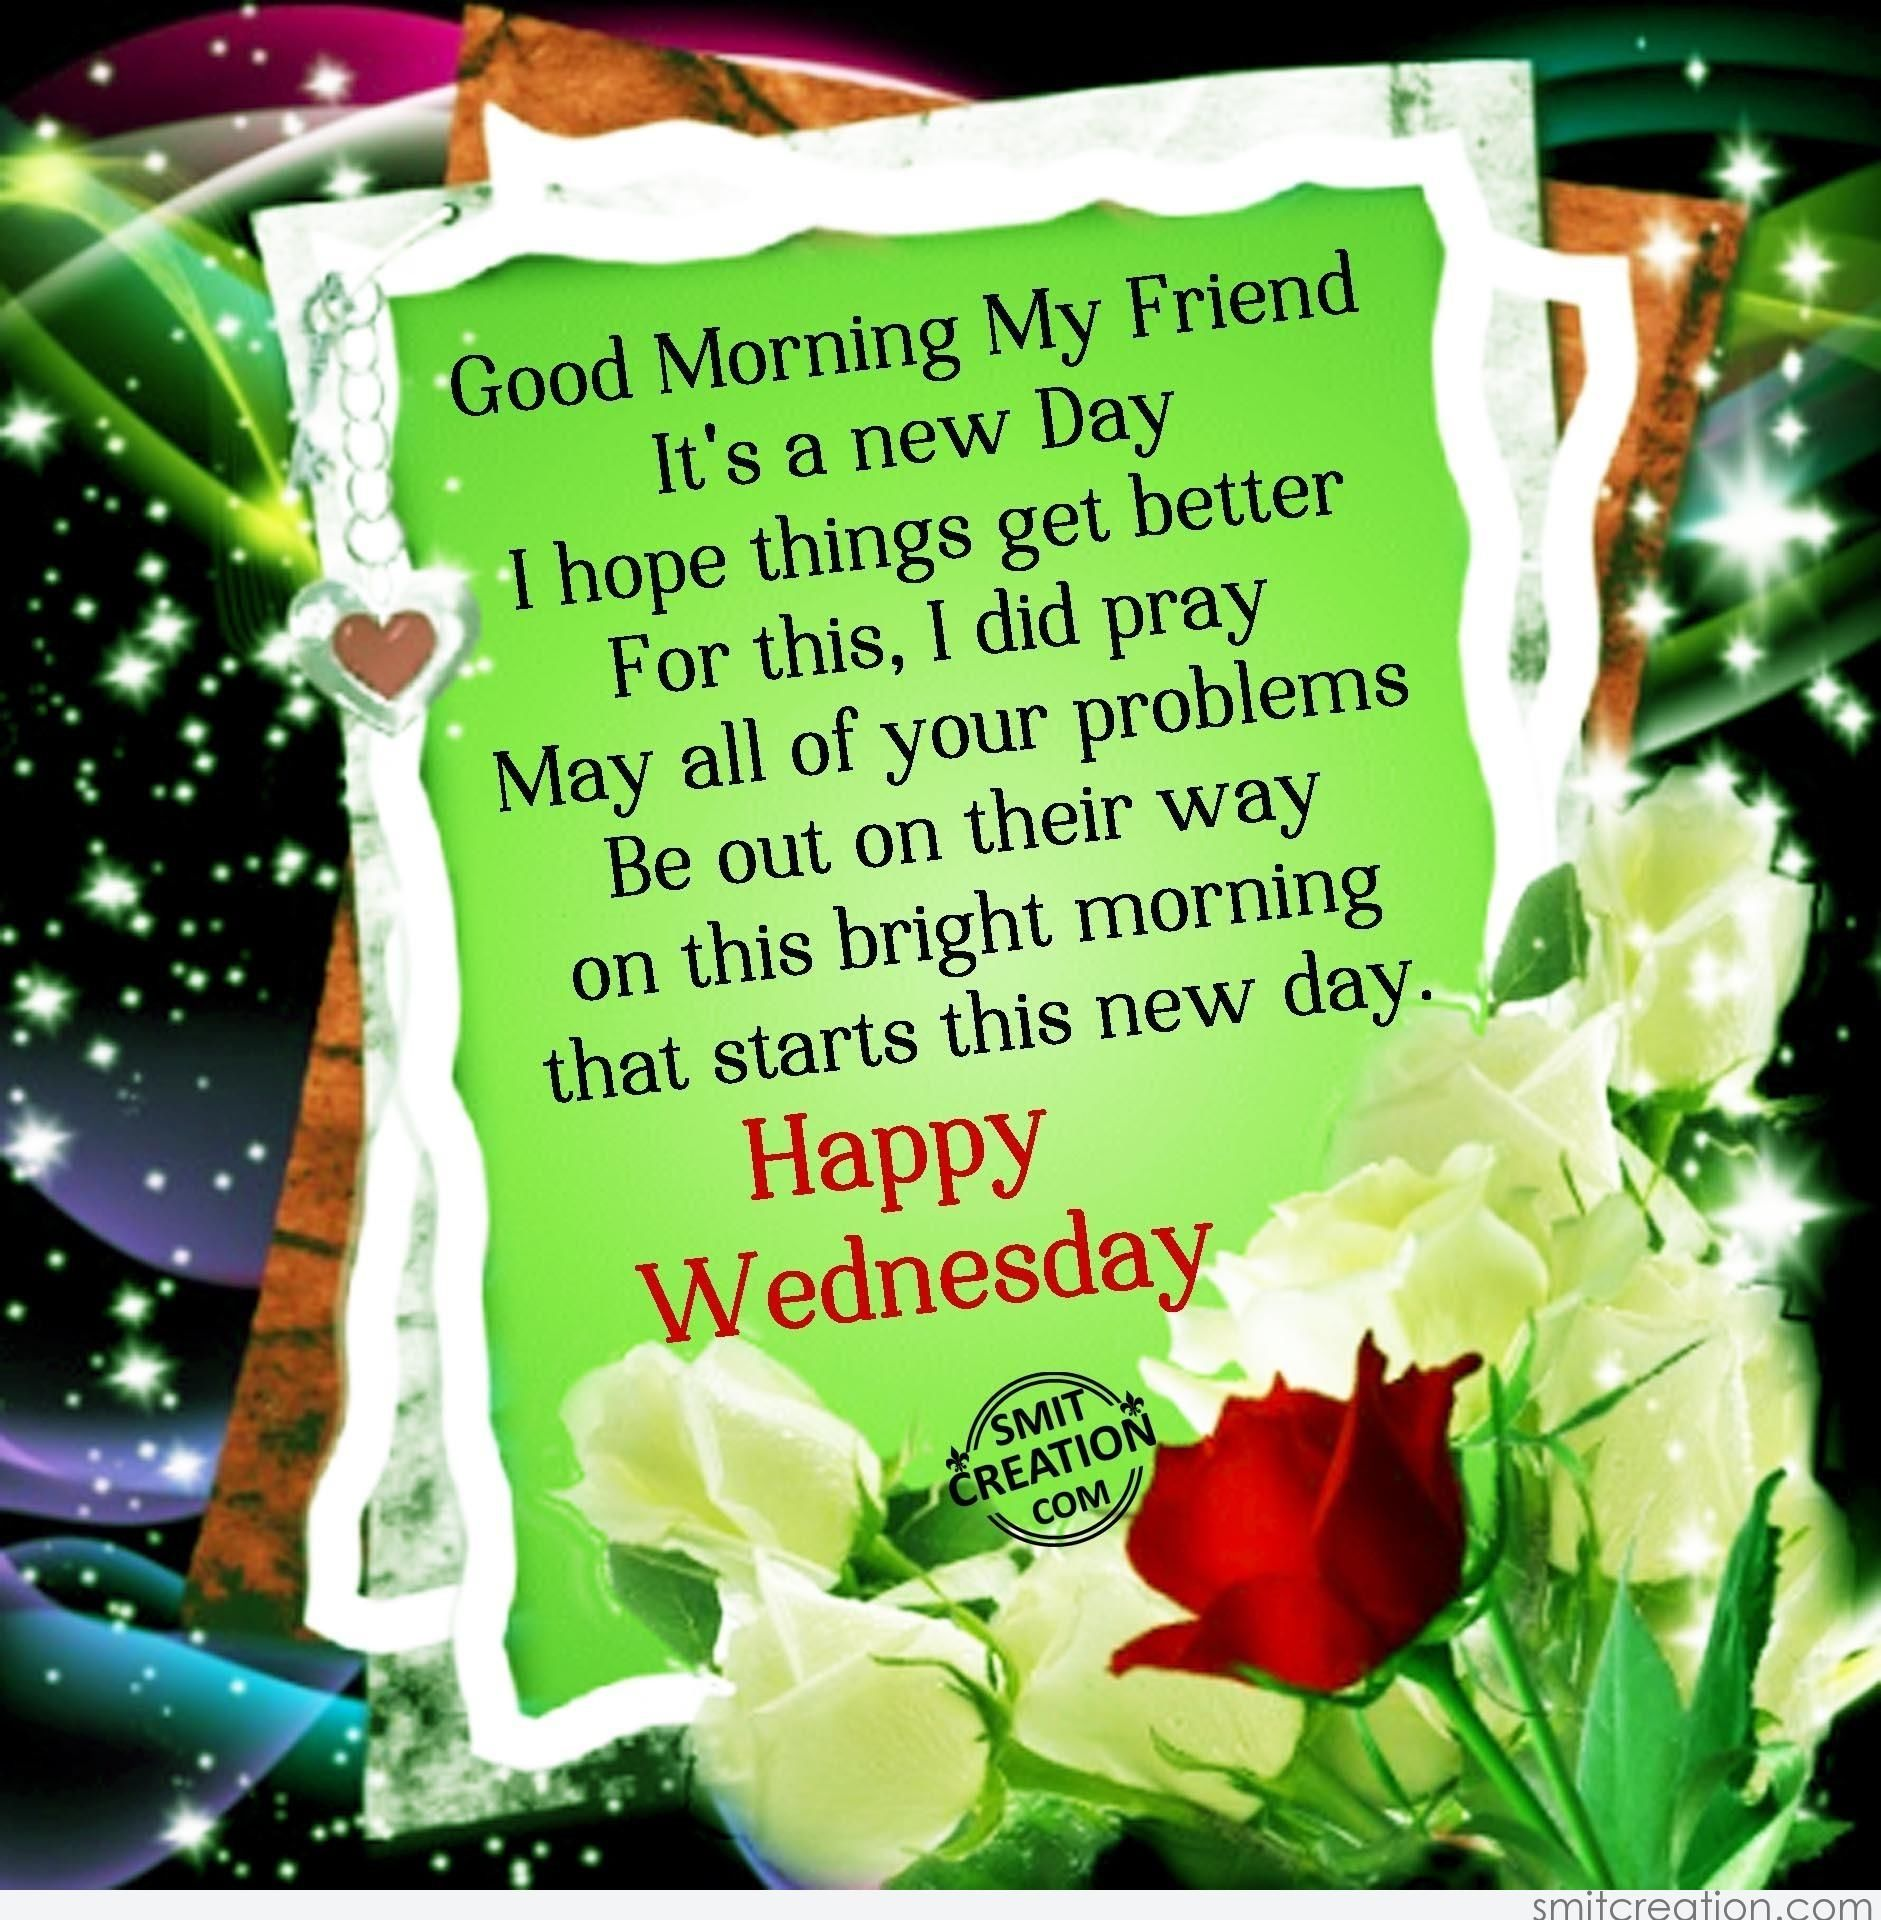 Good Morning My Friend, Happy Wednesday Good Morning Wednesday Wednesday Quotes  Good Morning Quotes Happyu2026